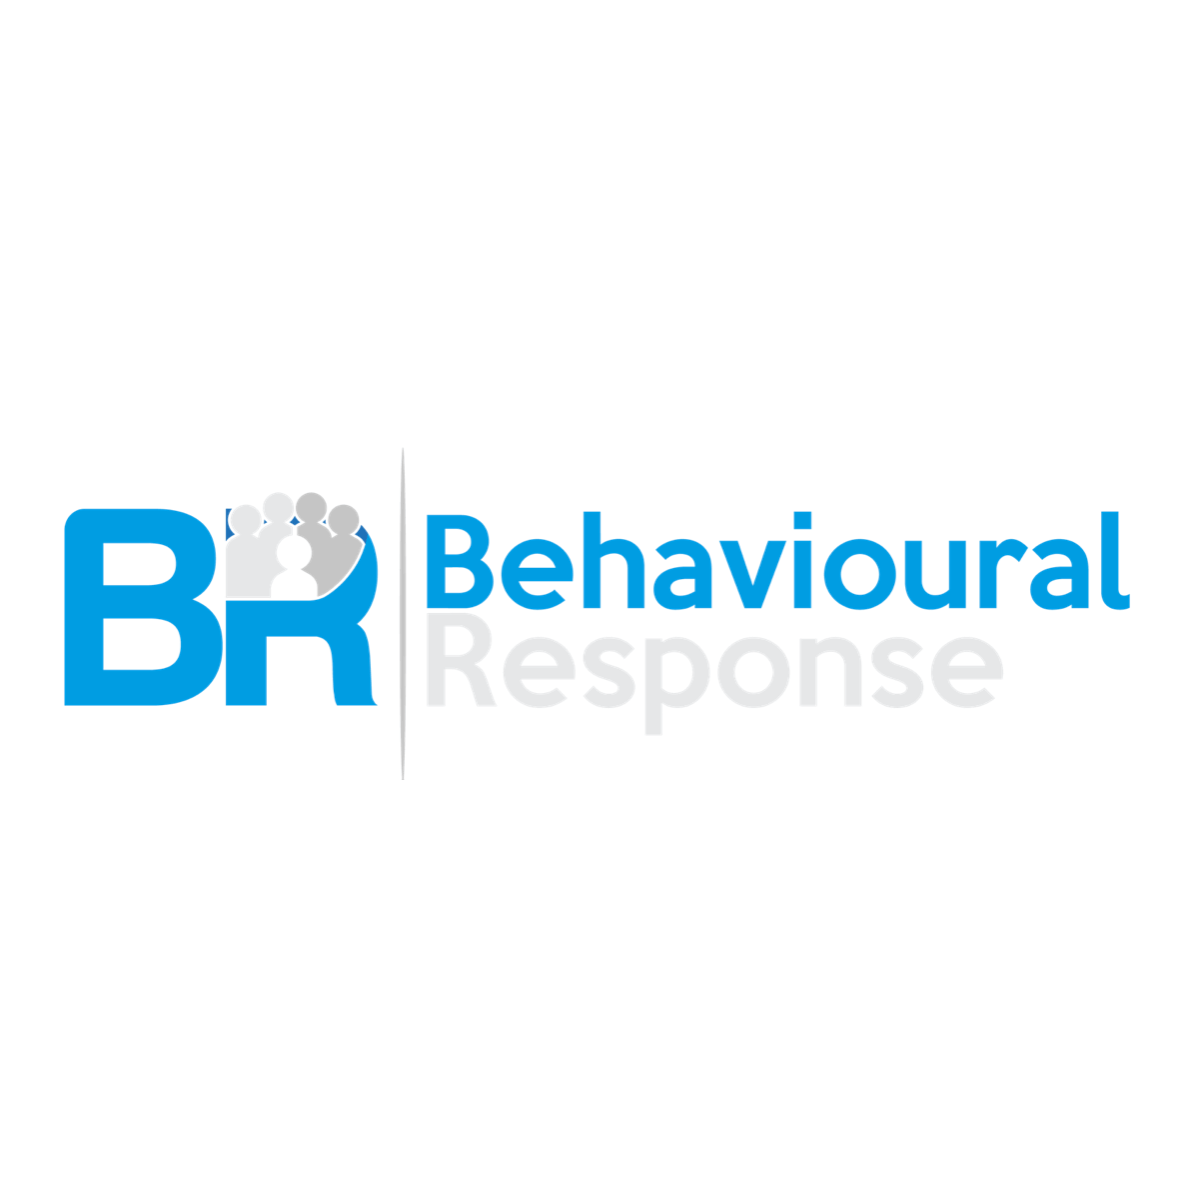 The speaker works for Behavioural Response